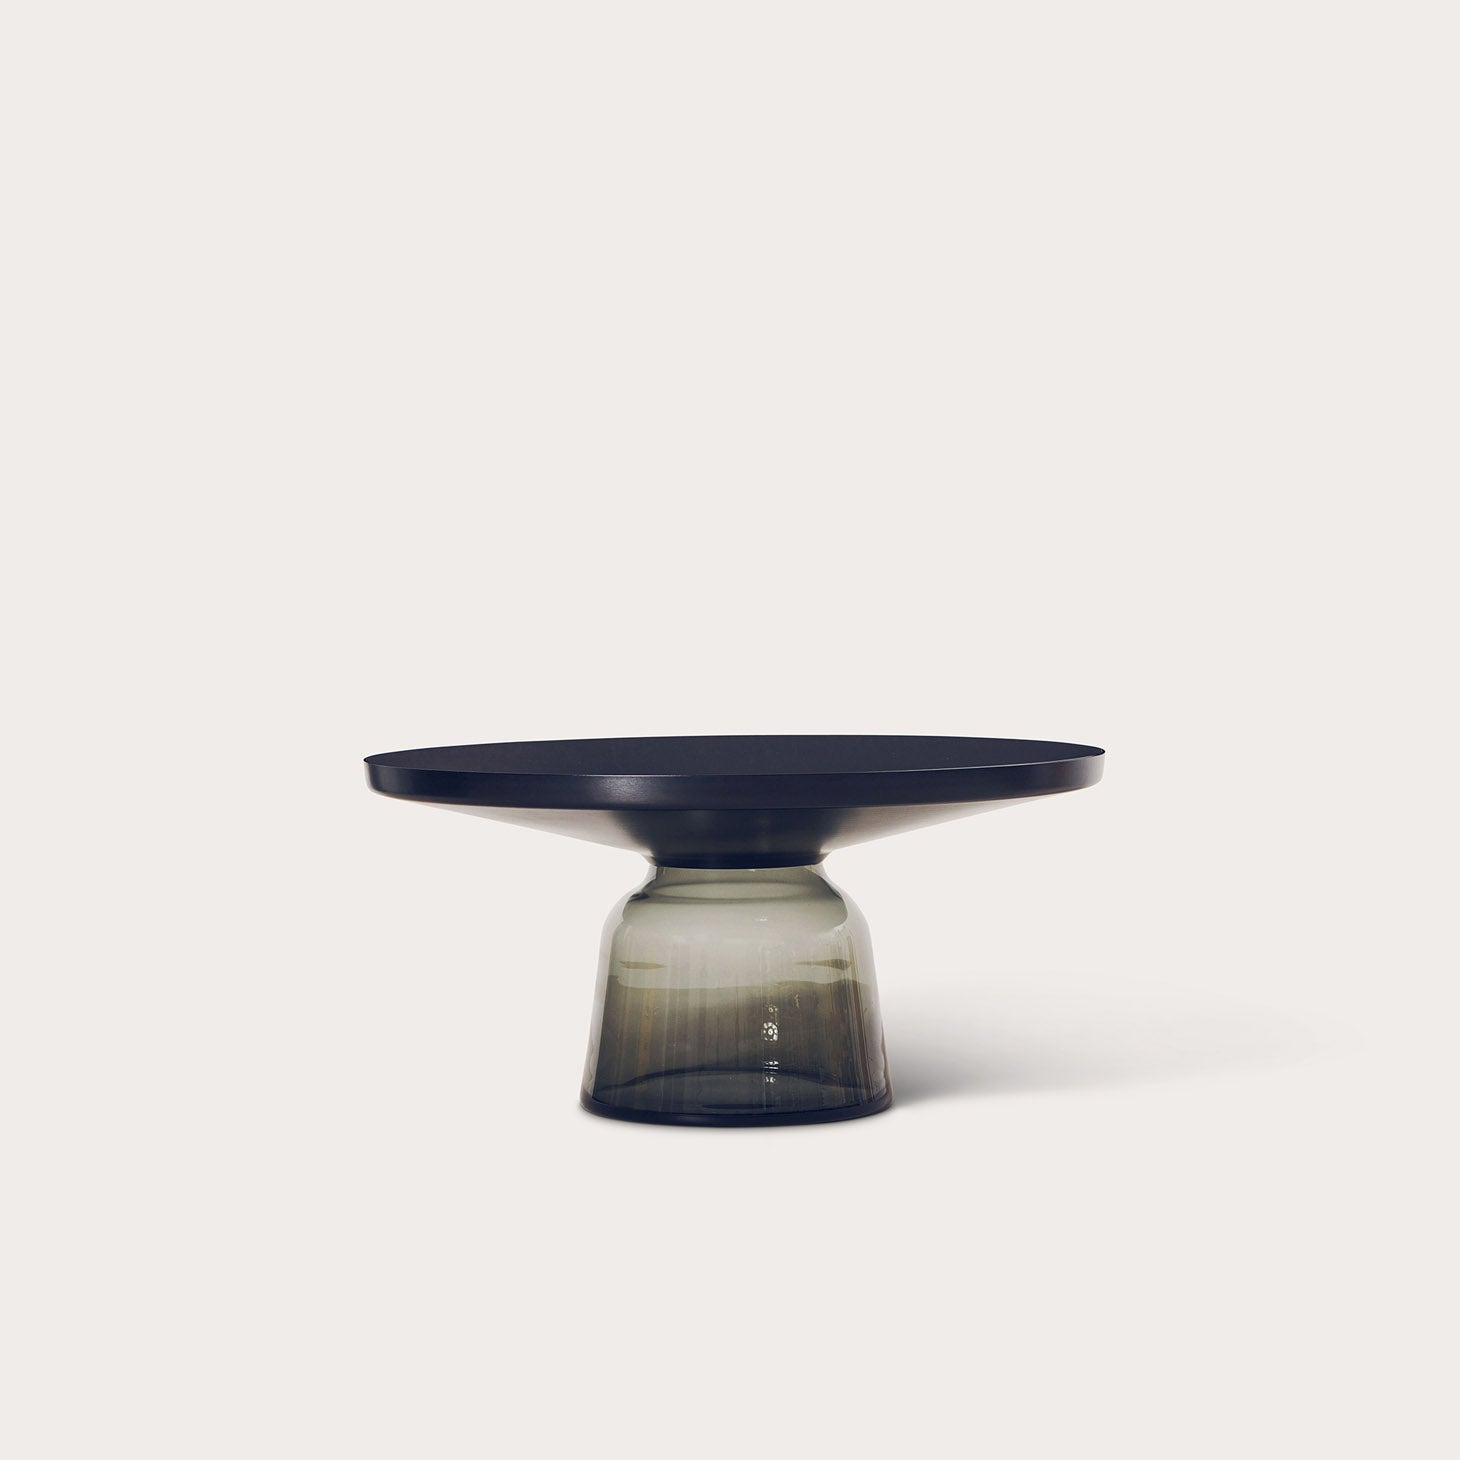 Bell Table Tables Sebastian Herkner Designer Furniture Sku: 001-230-10182